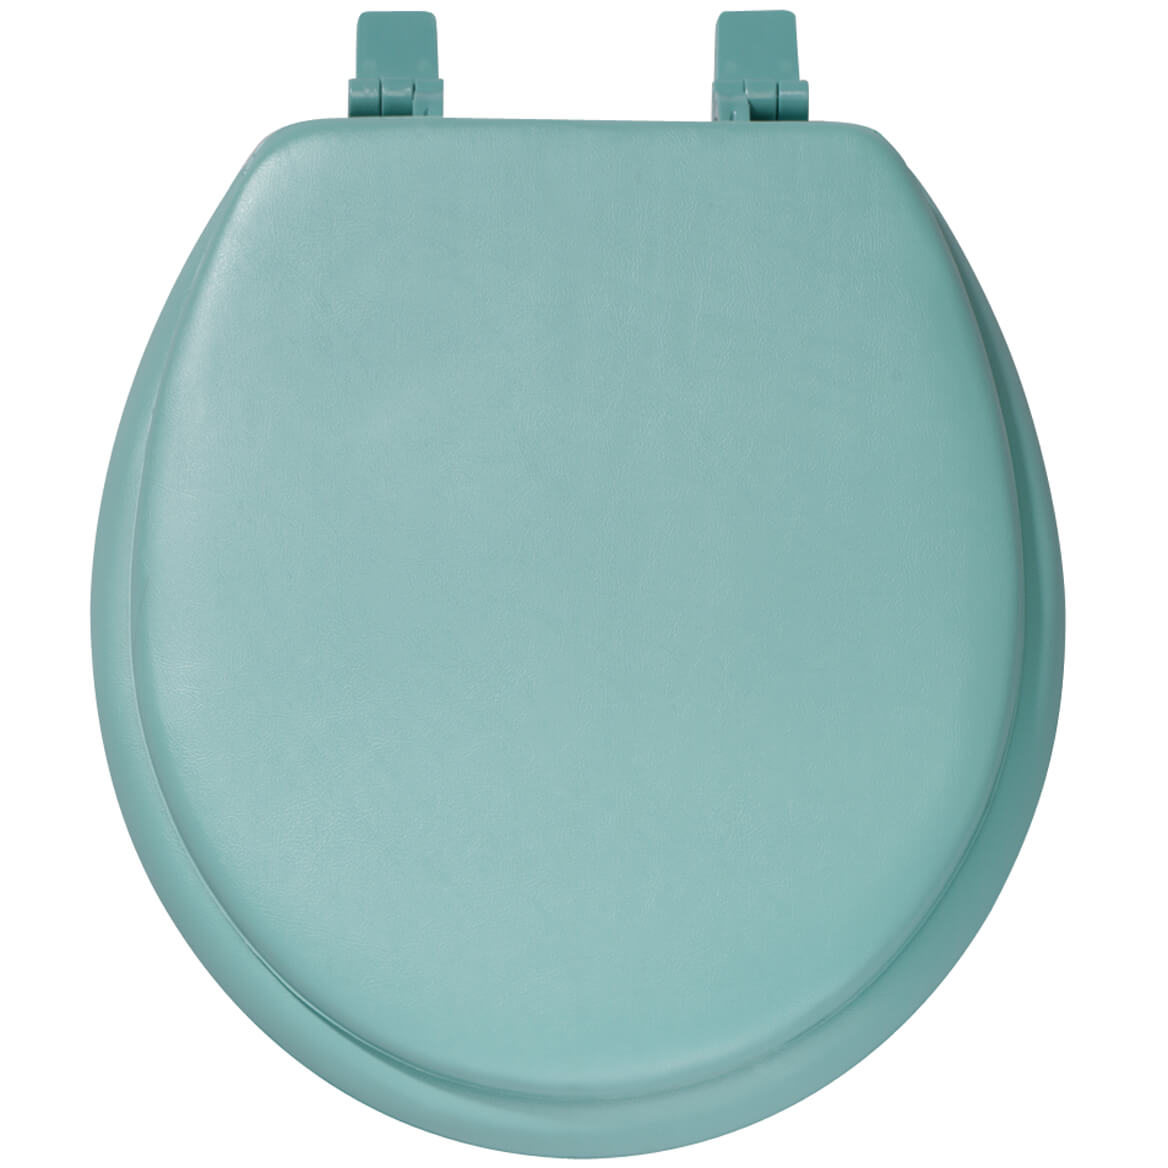 Padded Toilet Seat And Lid - Cushioned Toilet Seat - Walter Drake